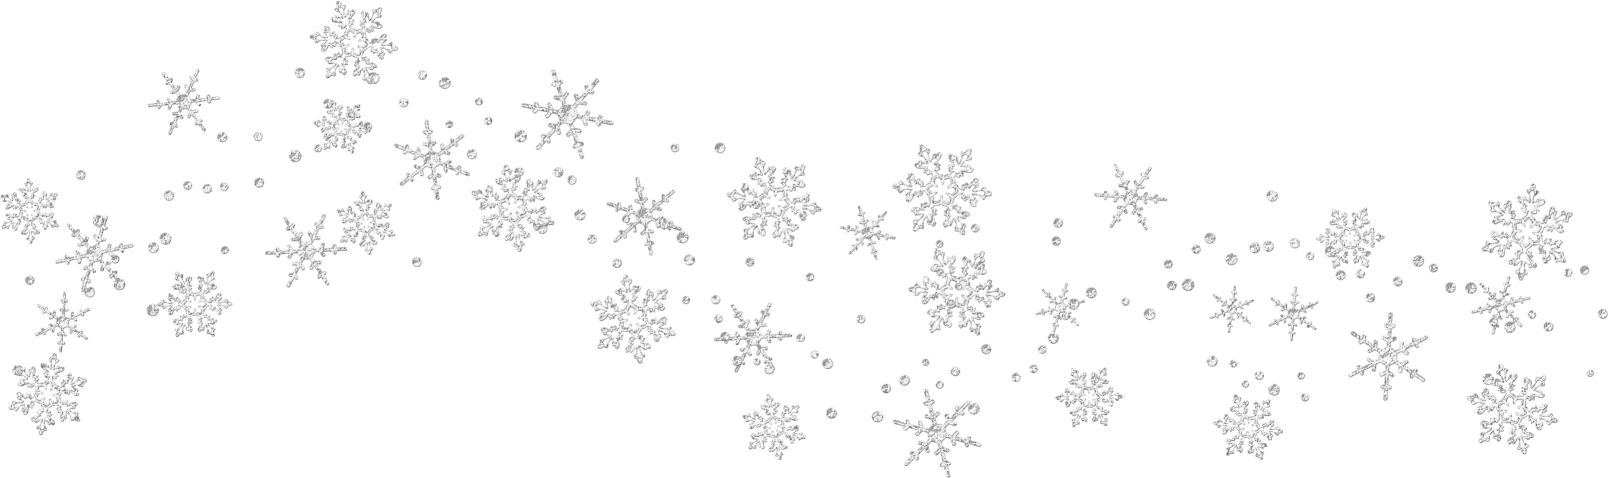 Blowing snowflake clipart png freeuse British Holidays on emaze png freeuse